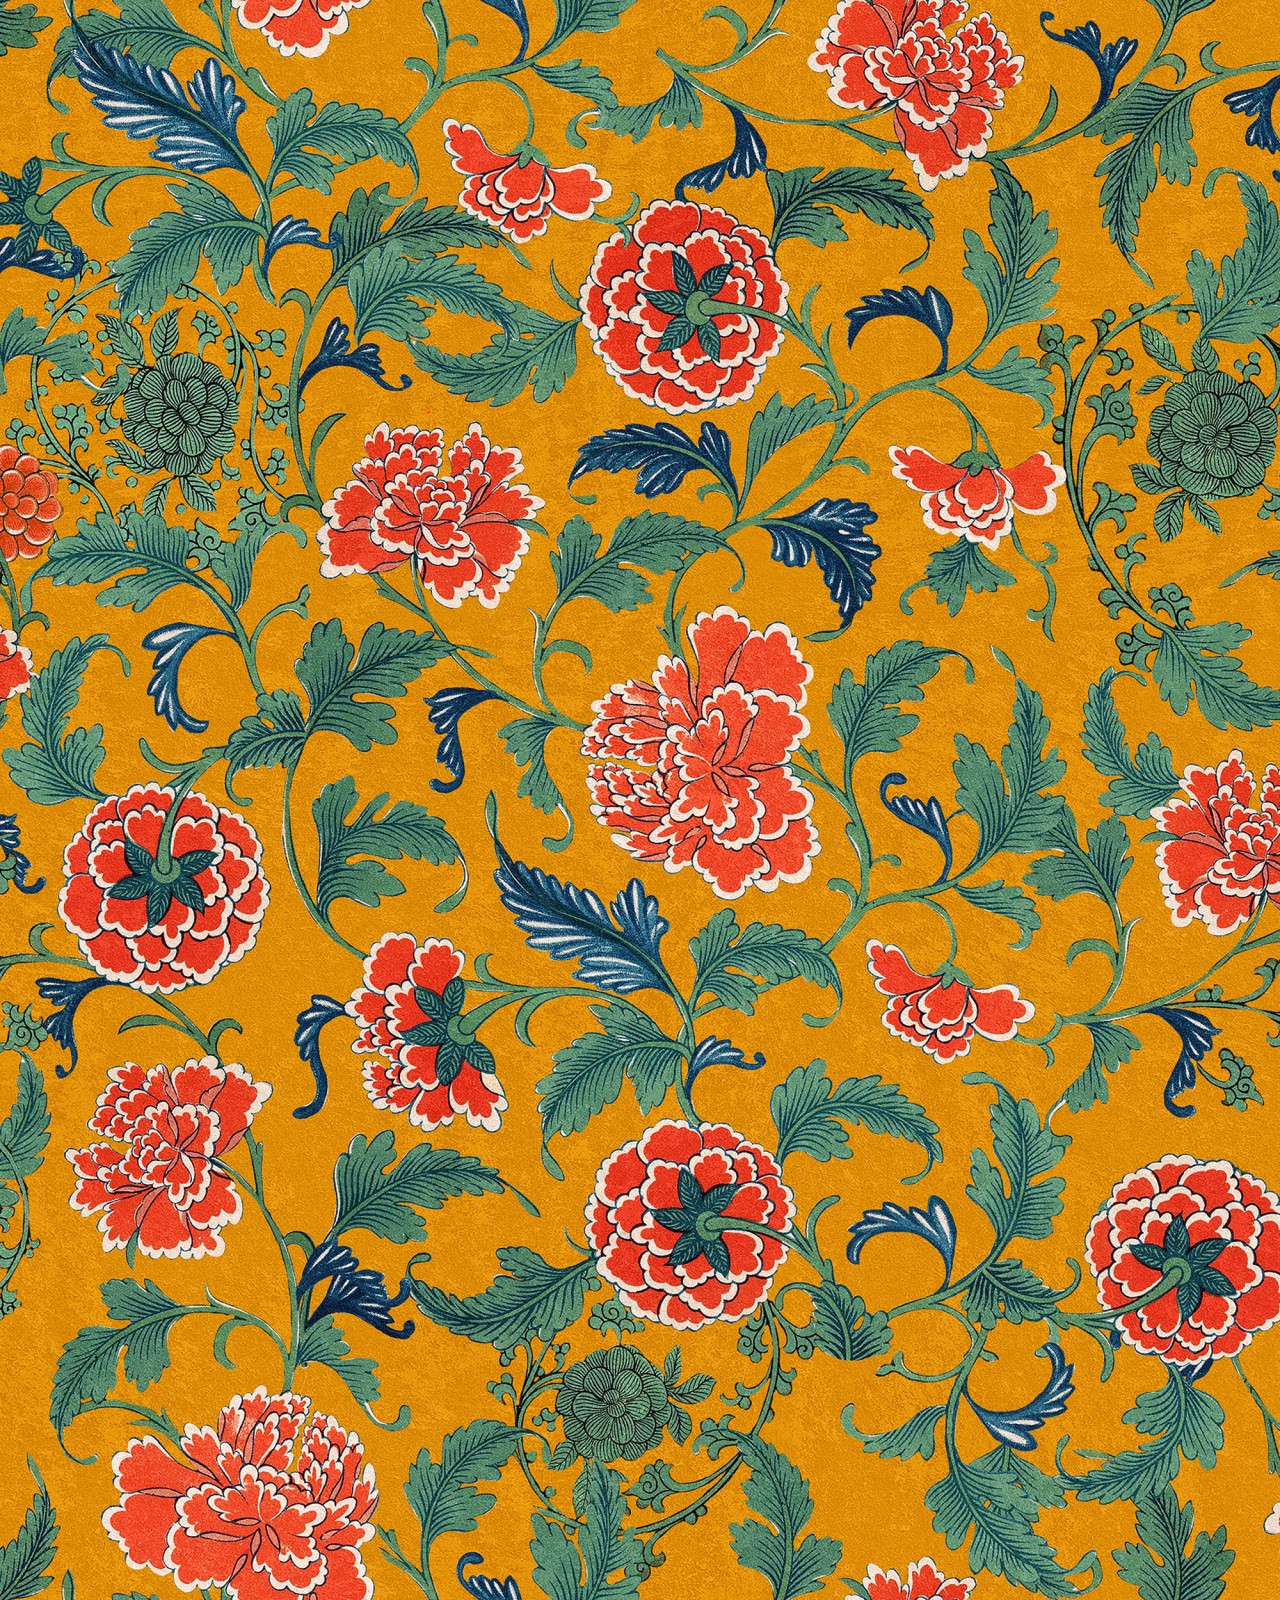 CHINESE ORNAMENT Wallpaper